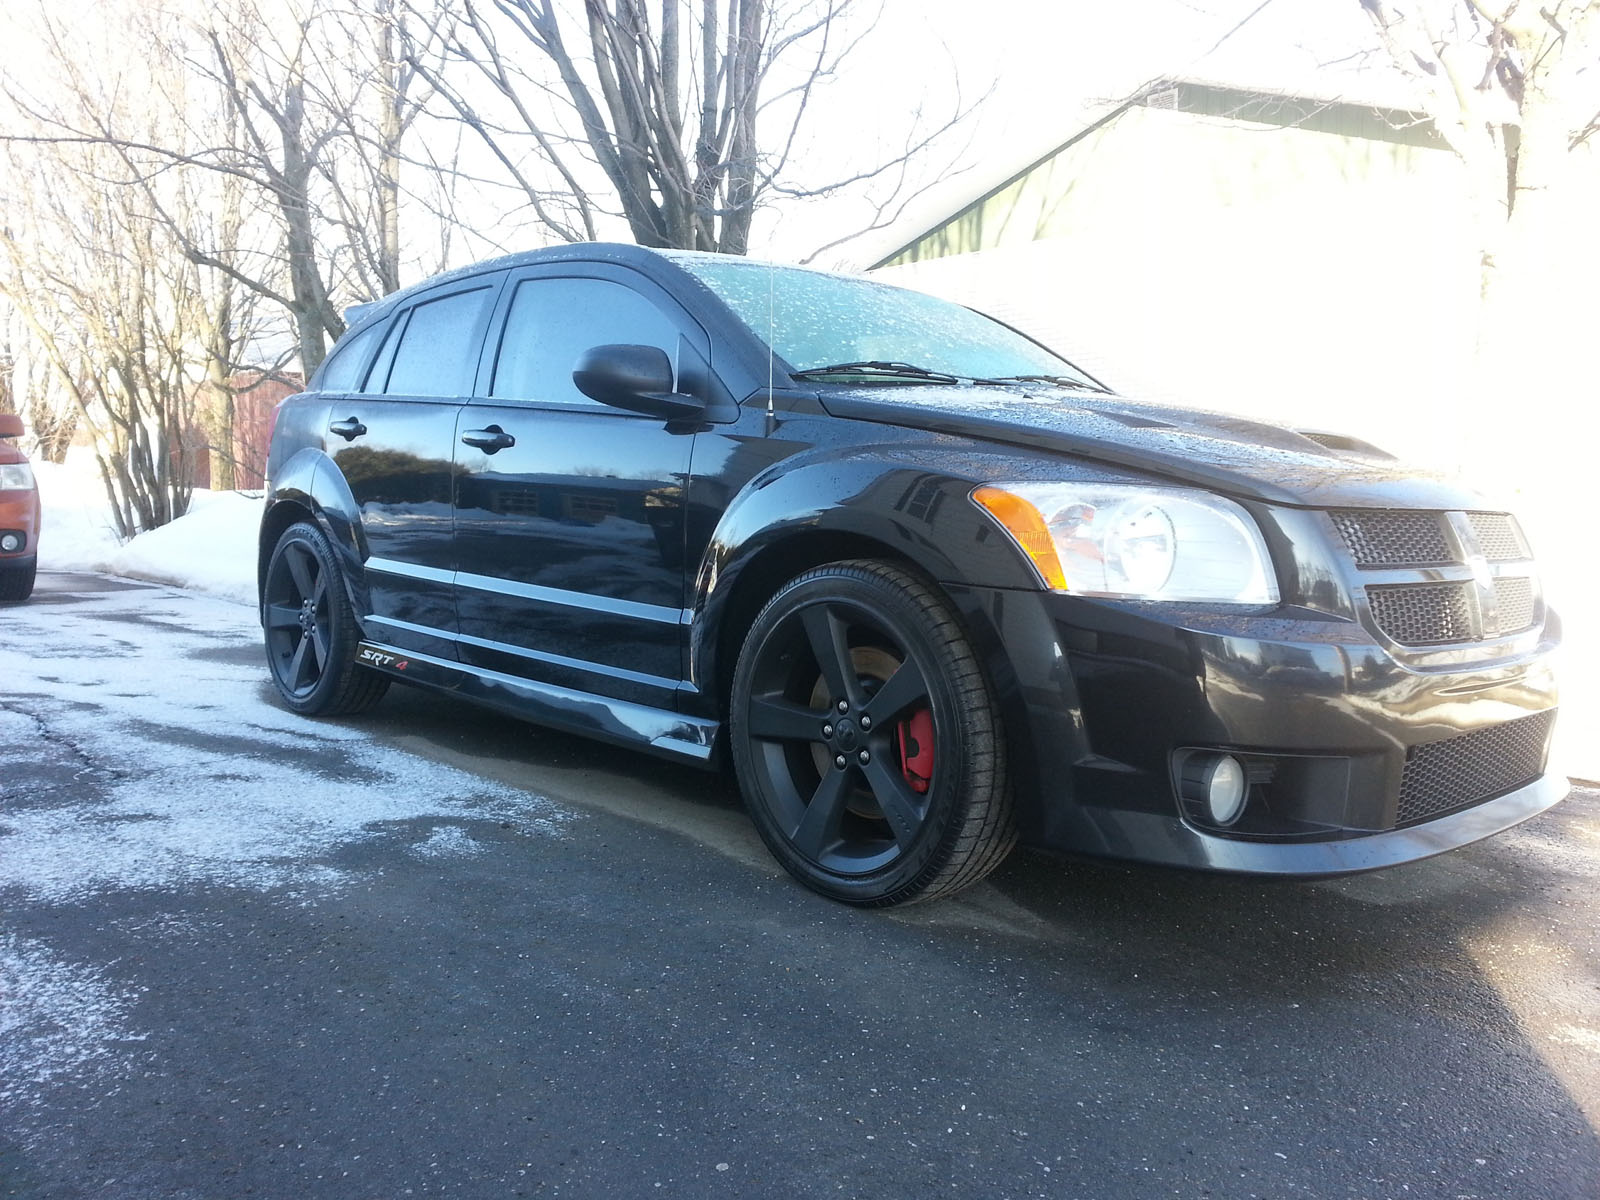 2009 black dodge caliber srt 4 pictures mods upgrades. Black Bedroom Furniture Sets. Home Design Ideas